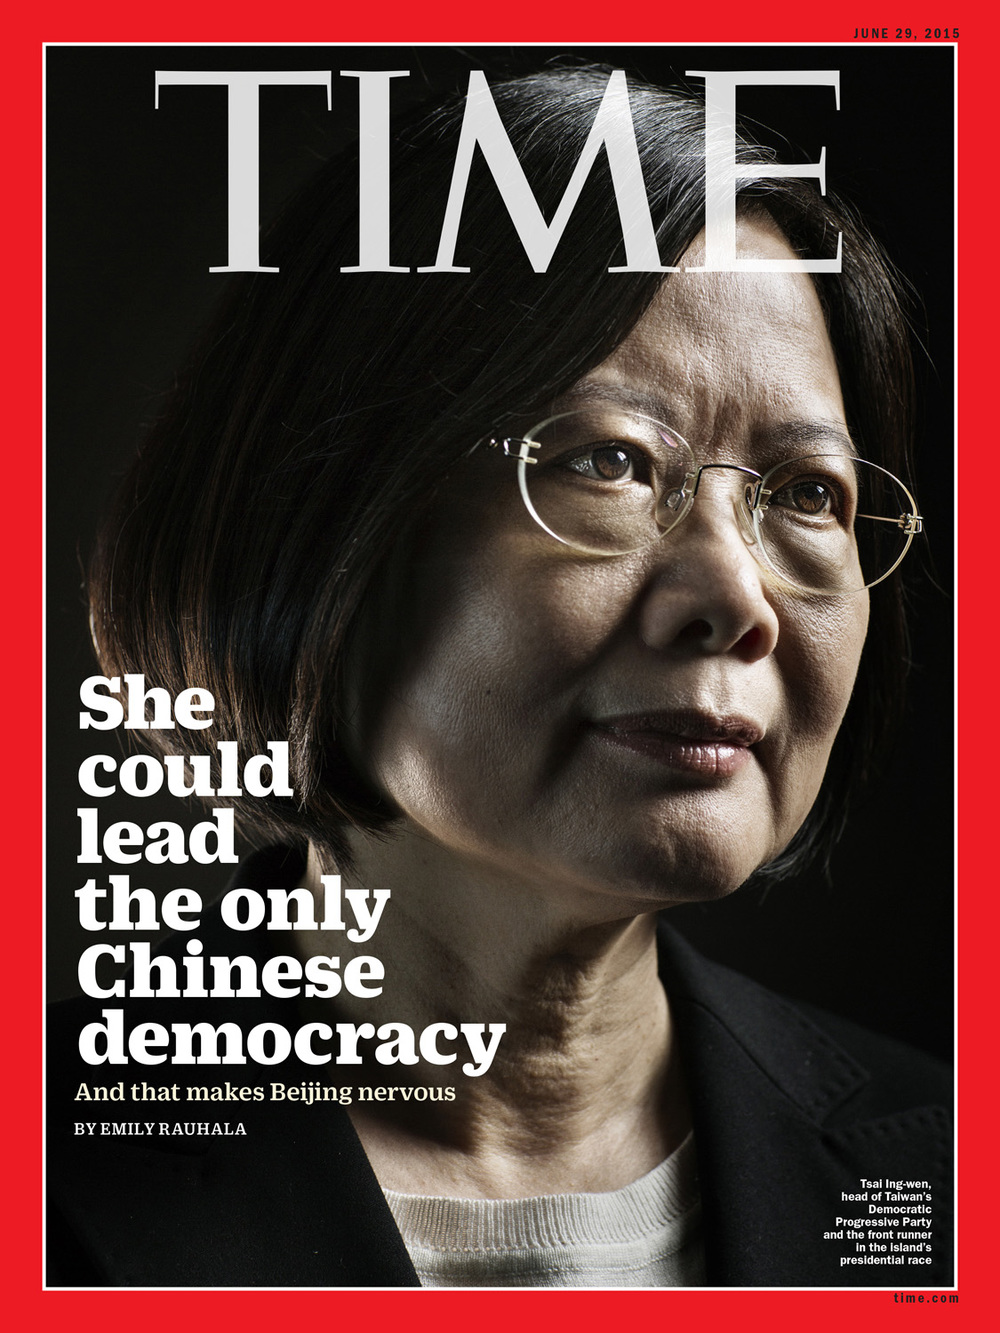 TIME Magazine (Asia), Tsai Ing-wen, 'She Could Lead the only Chinese Democracy', June 29th, 2015. Photo by Adam Ferguson